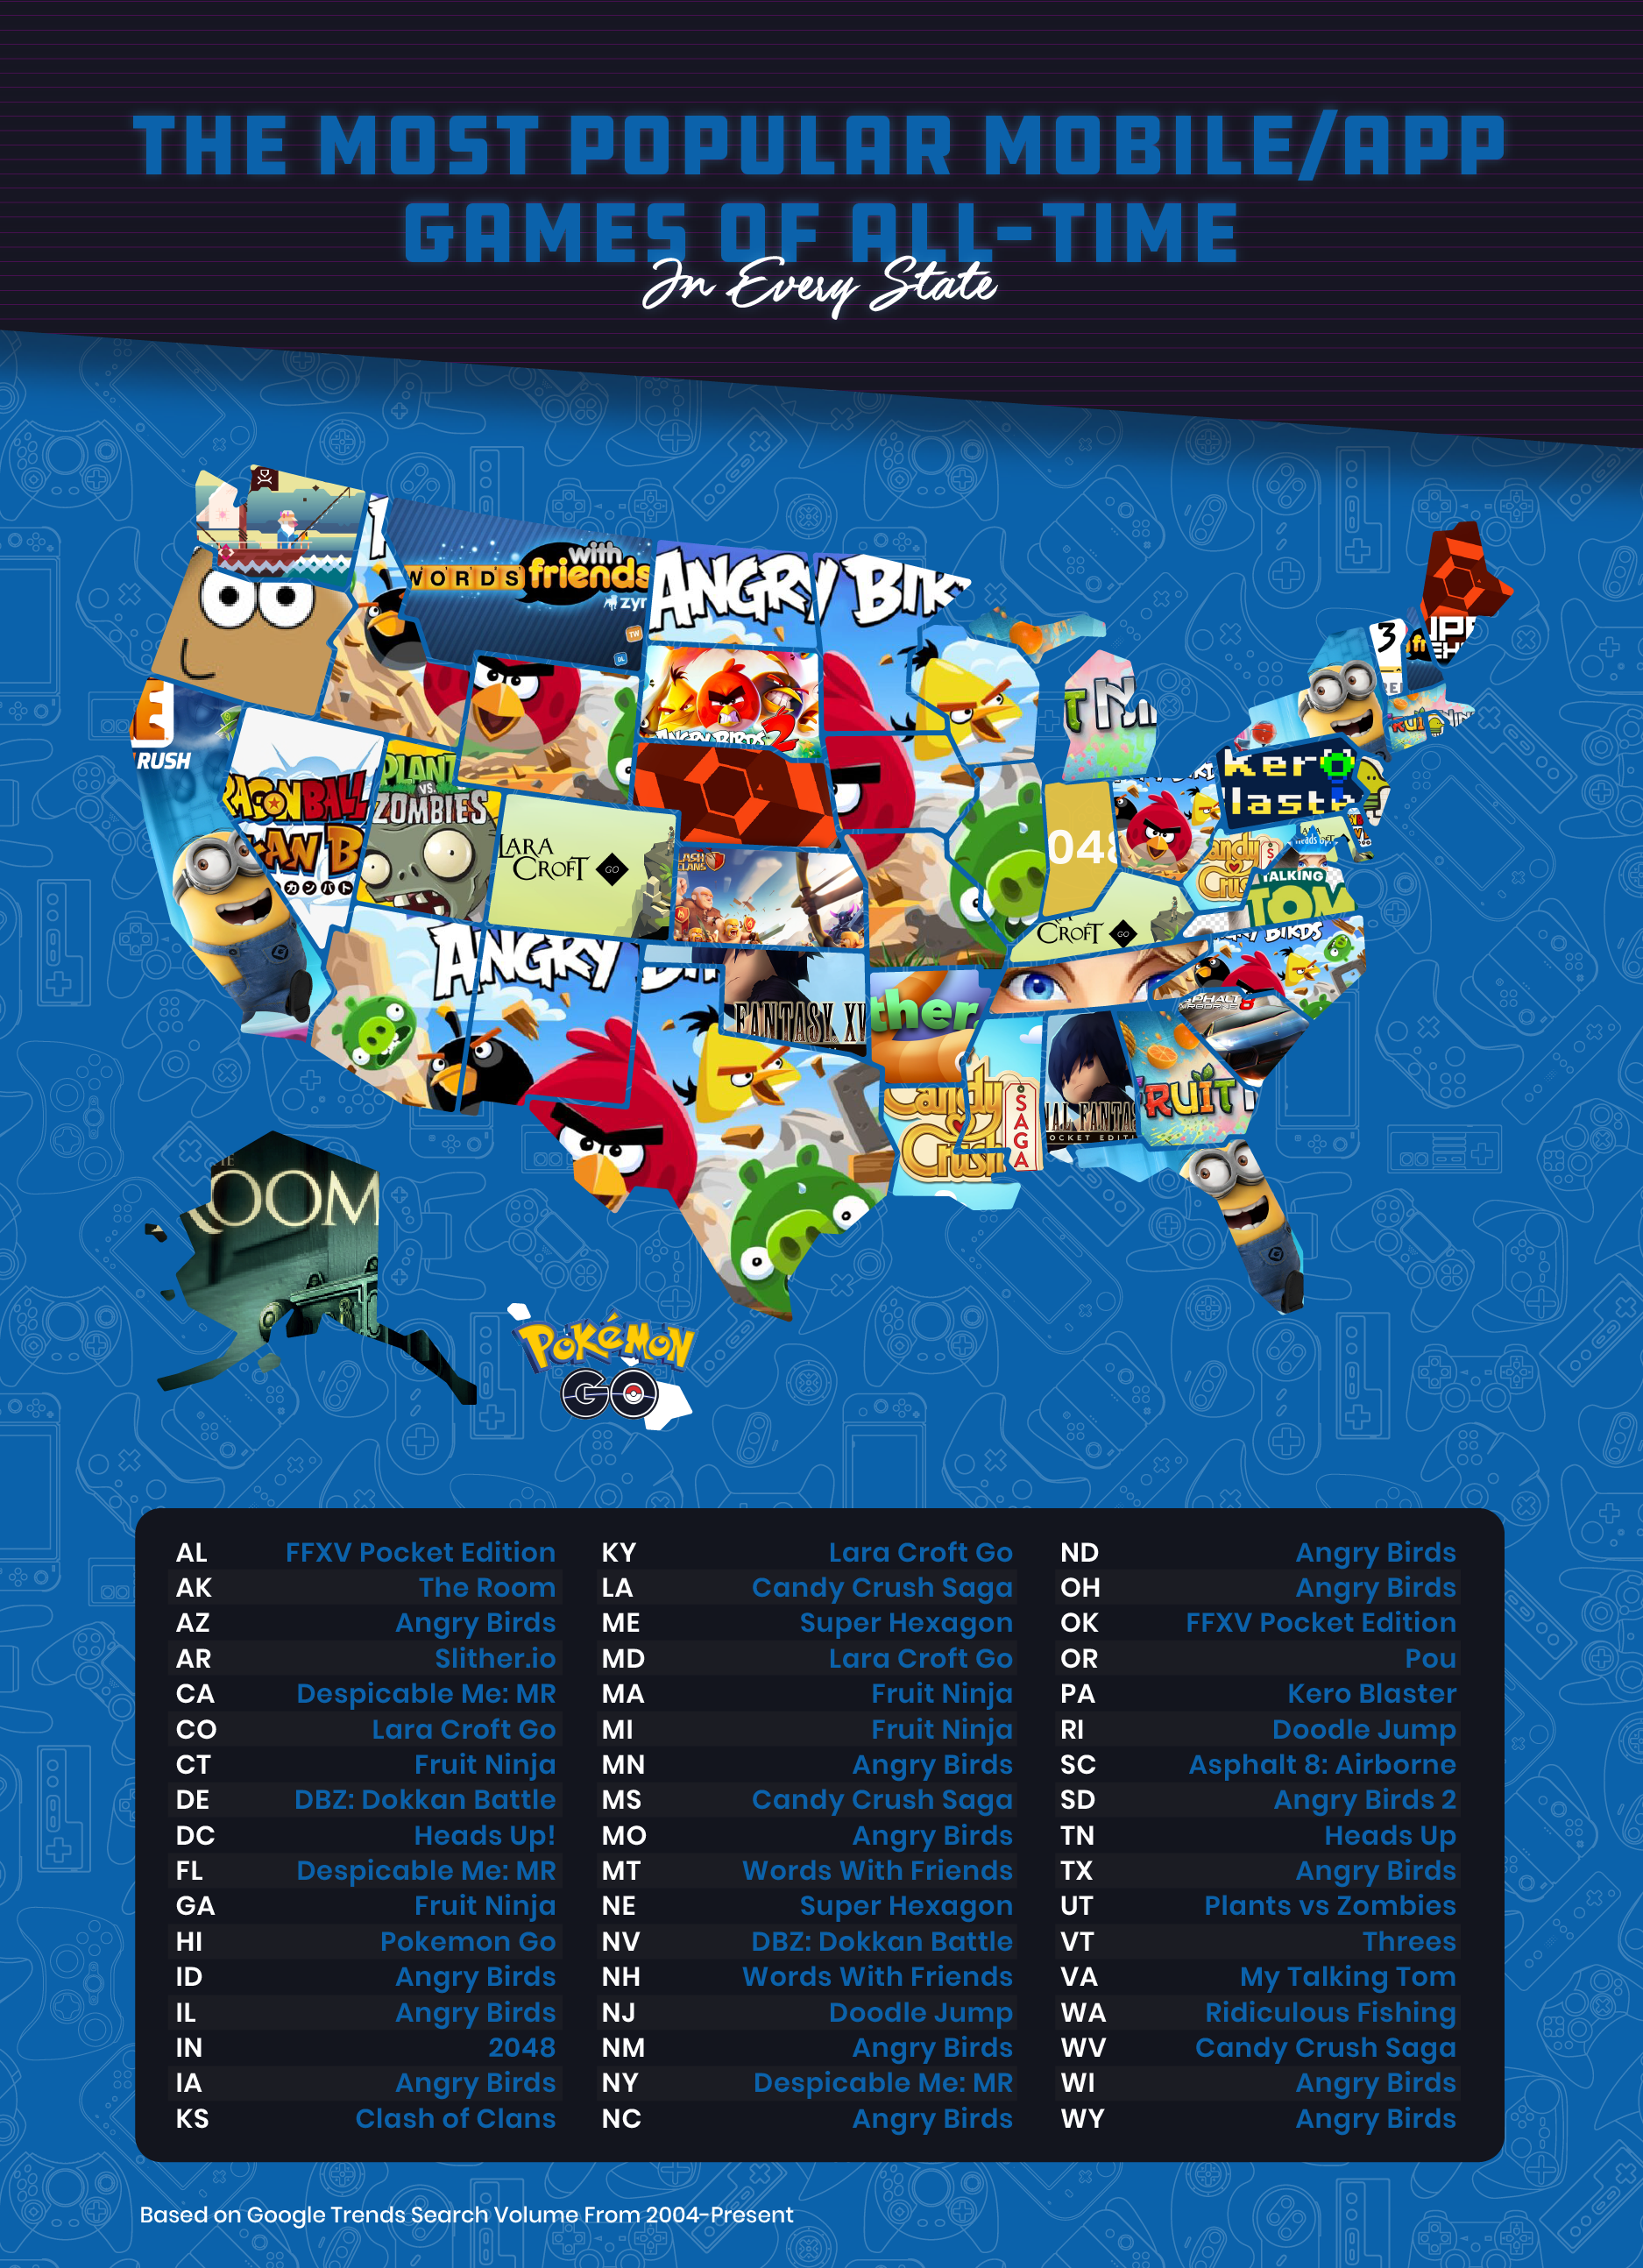 US map showing the most popular mobile/app game of all time by state